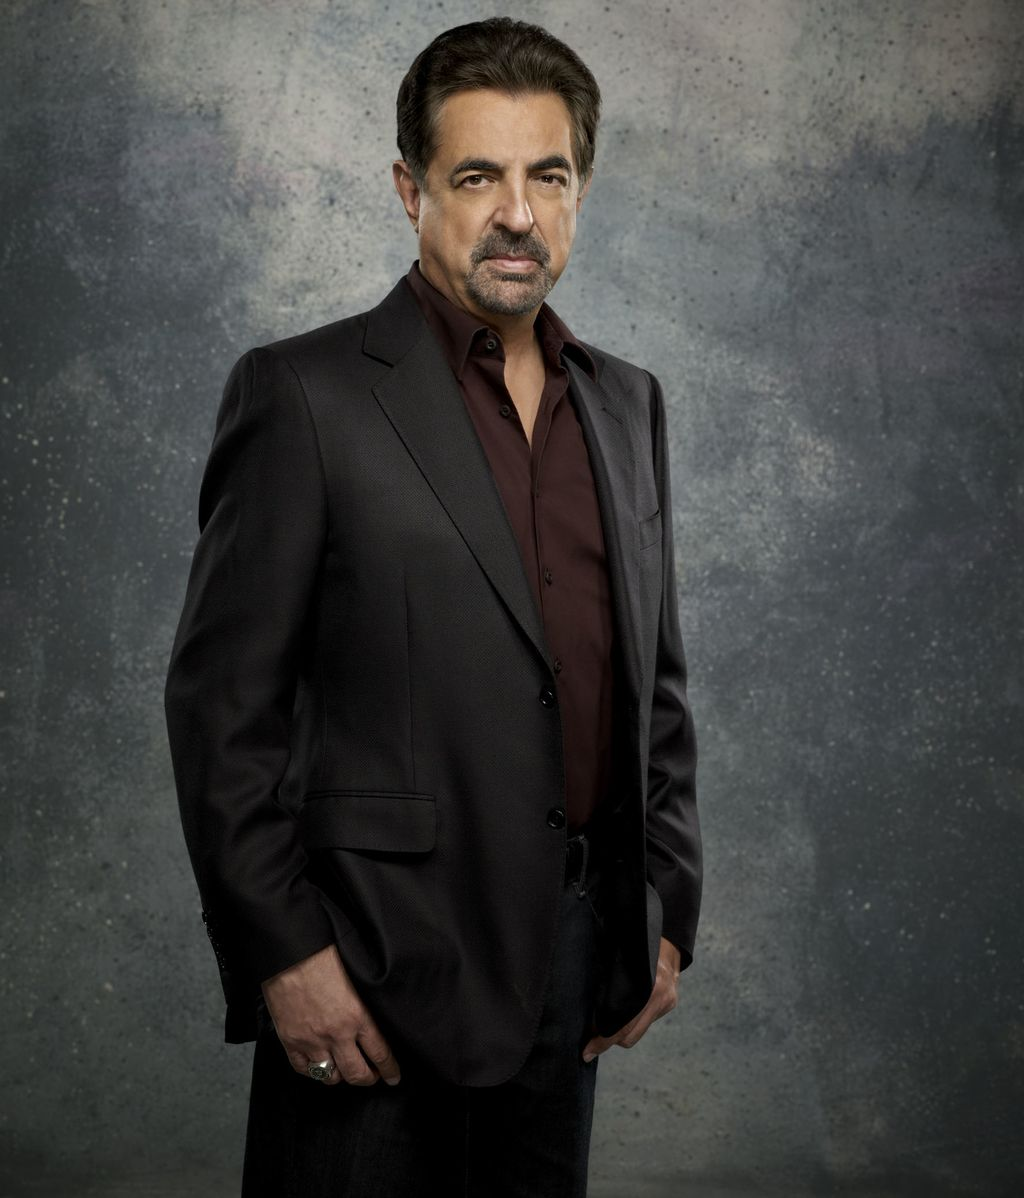 David Rossi (interpretado por Joe Mantegna)